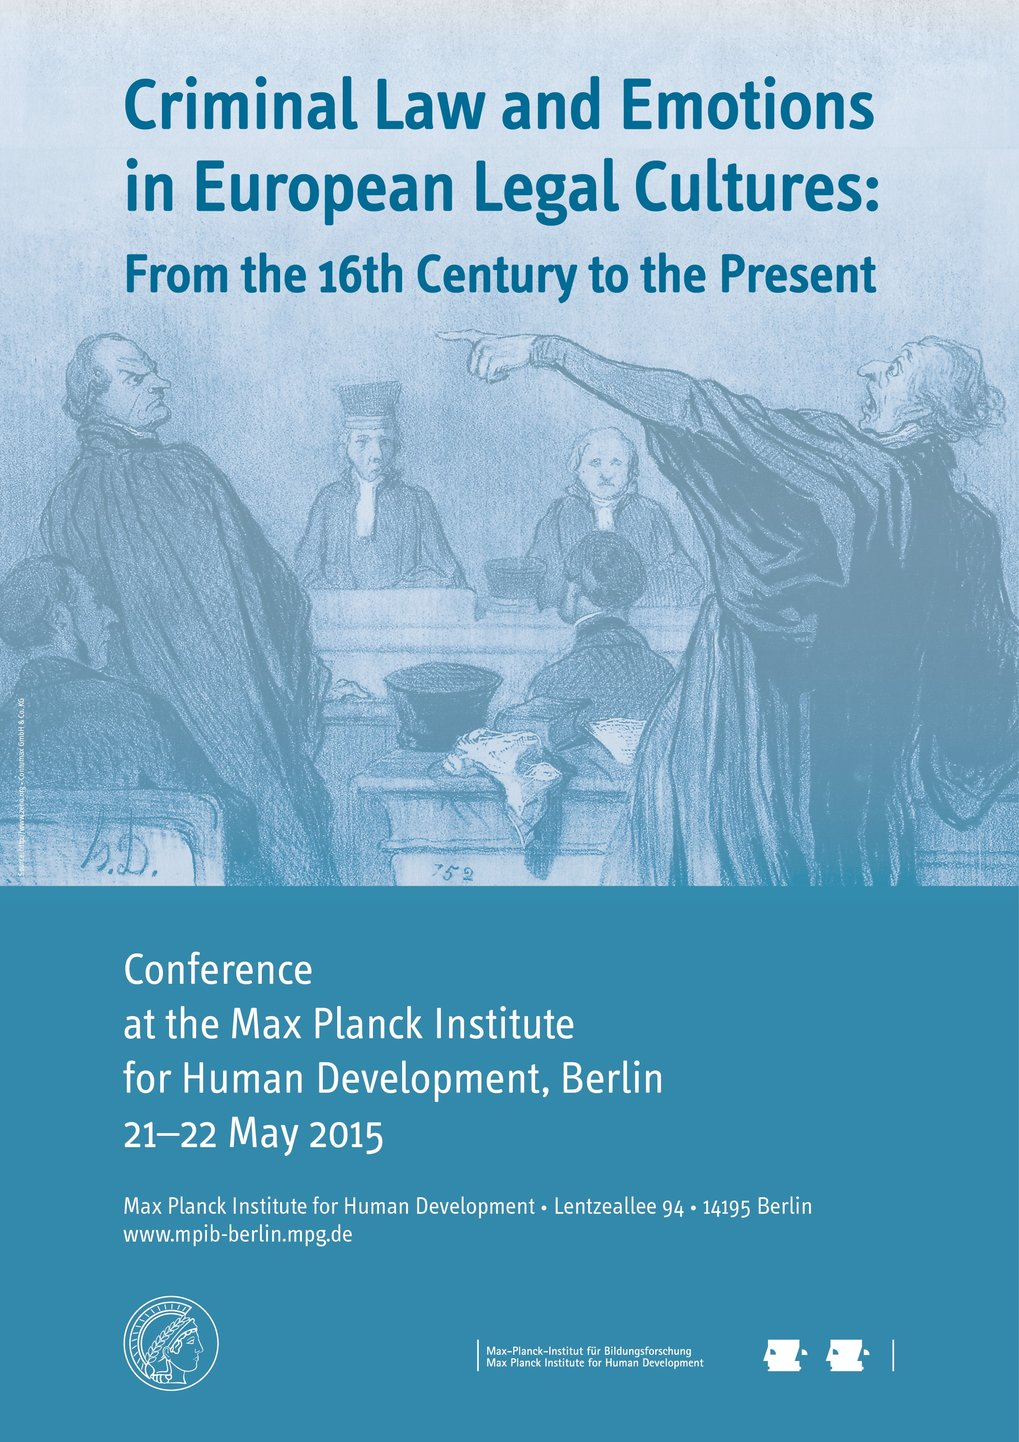 Criminal Law and Emotions in European Legal Cultures: From the 16th Century to the Present<br />21.-22. Mai 2015